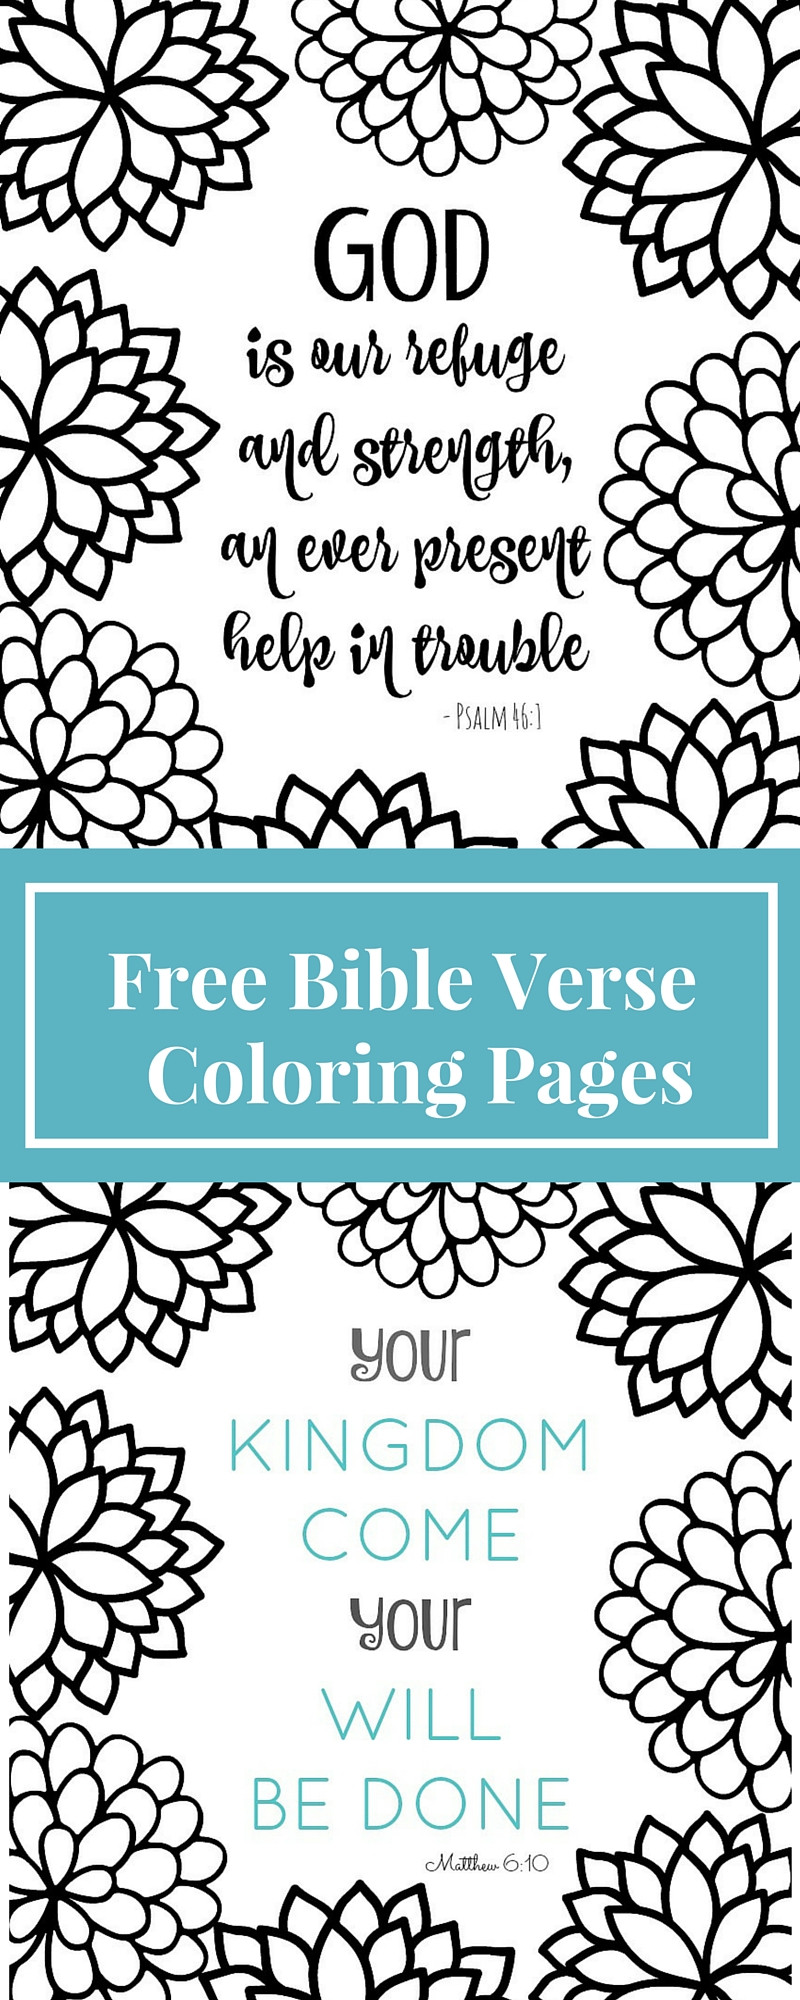 Free Bible Verse Coloring Pages  Free Printable Bible Verse Coloring Pages with Bursting